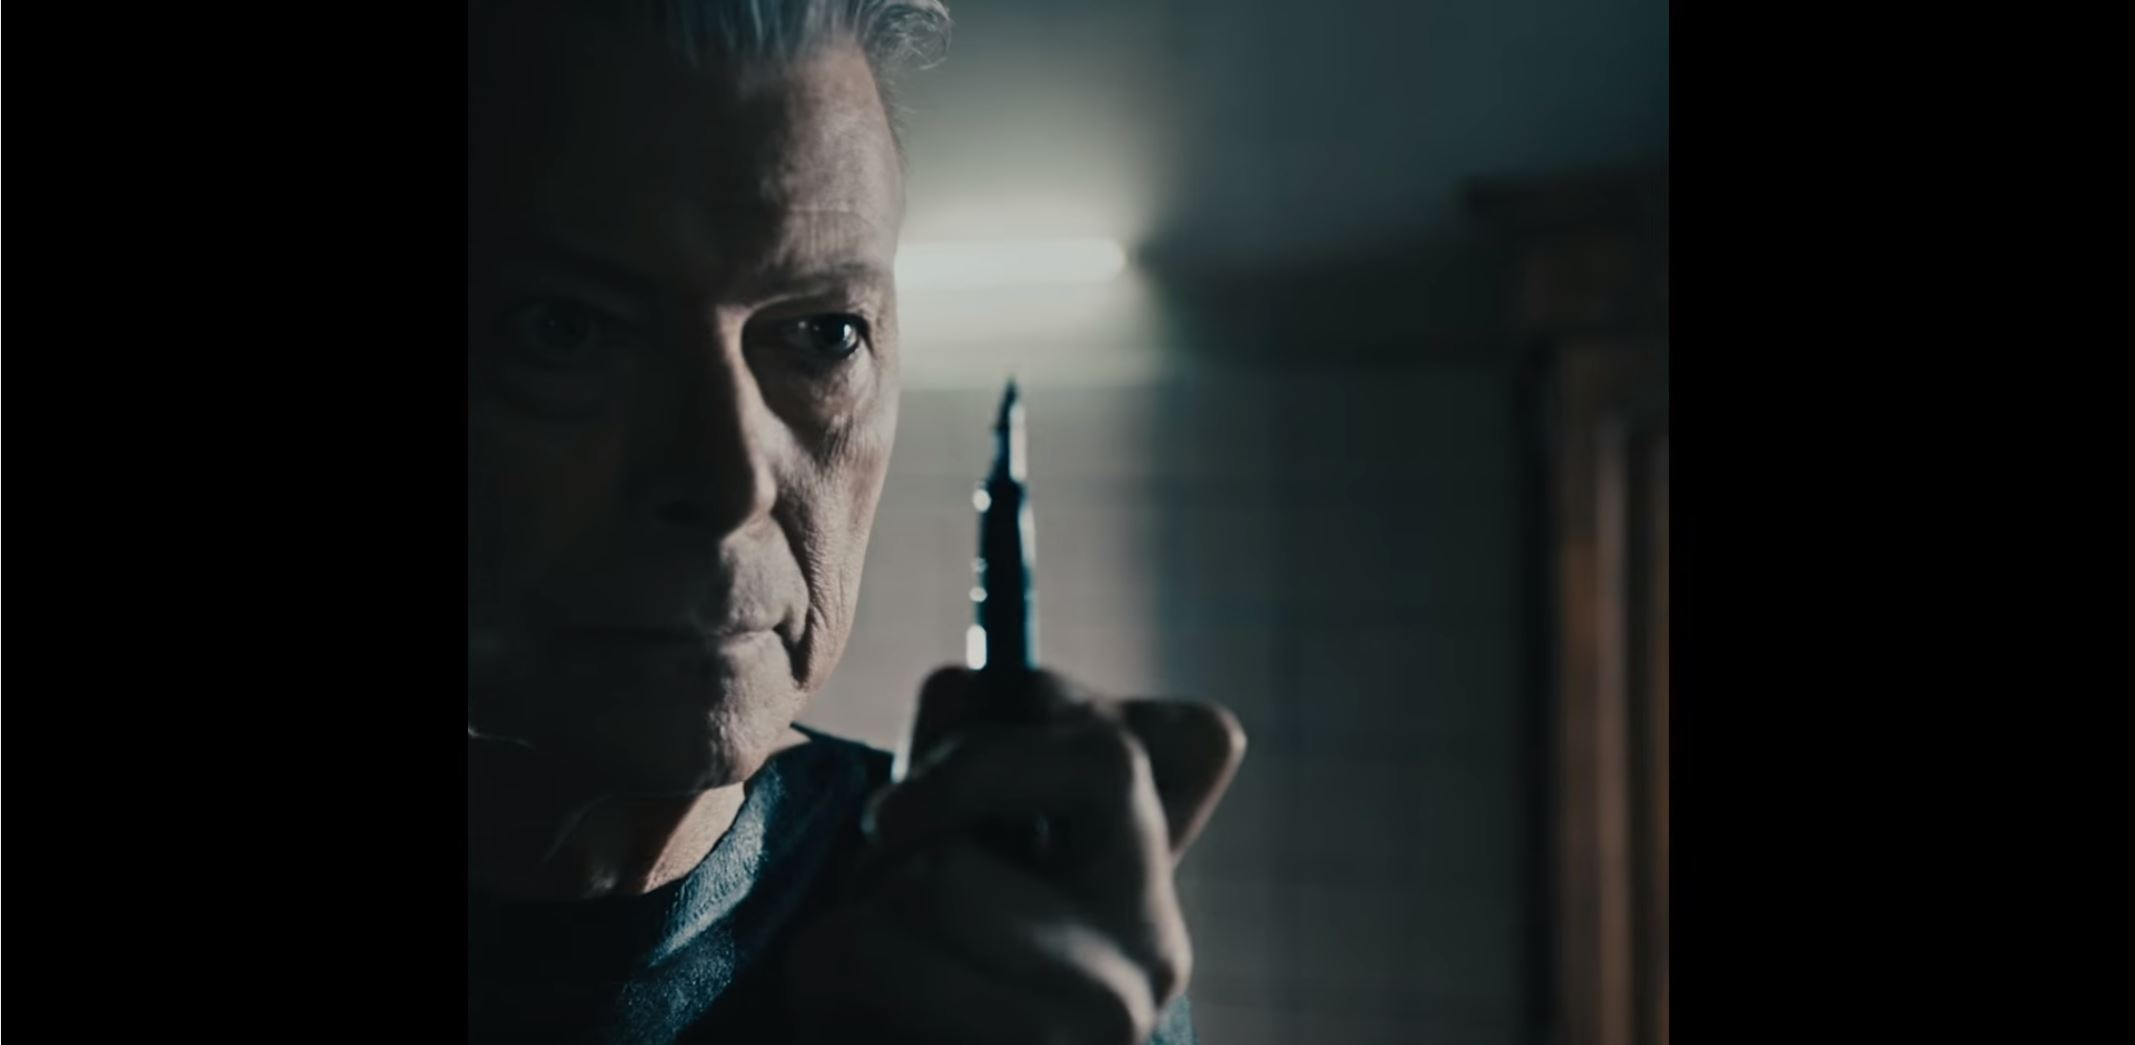 Watch The New Full Video By David Bowie - Lazarus